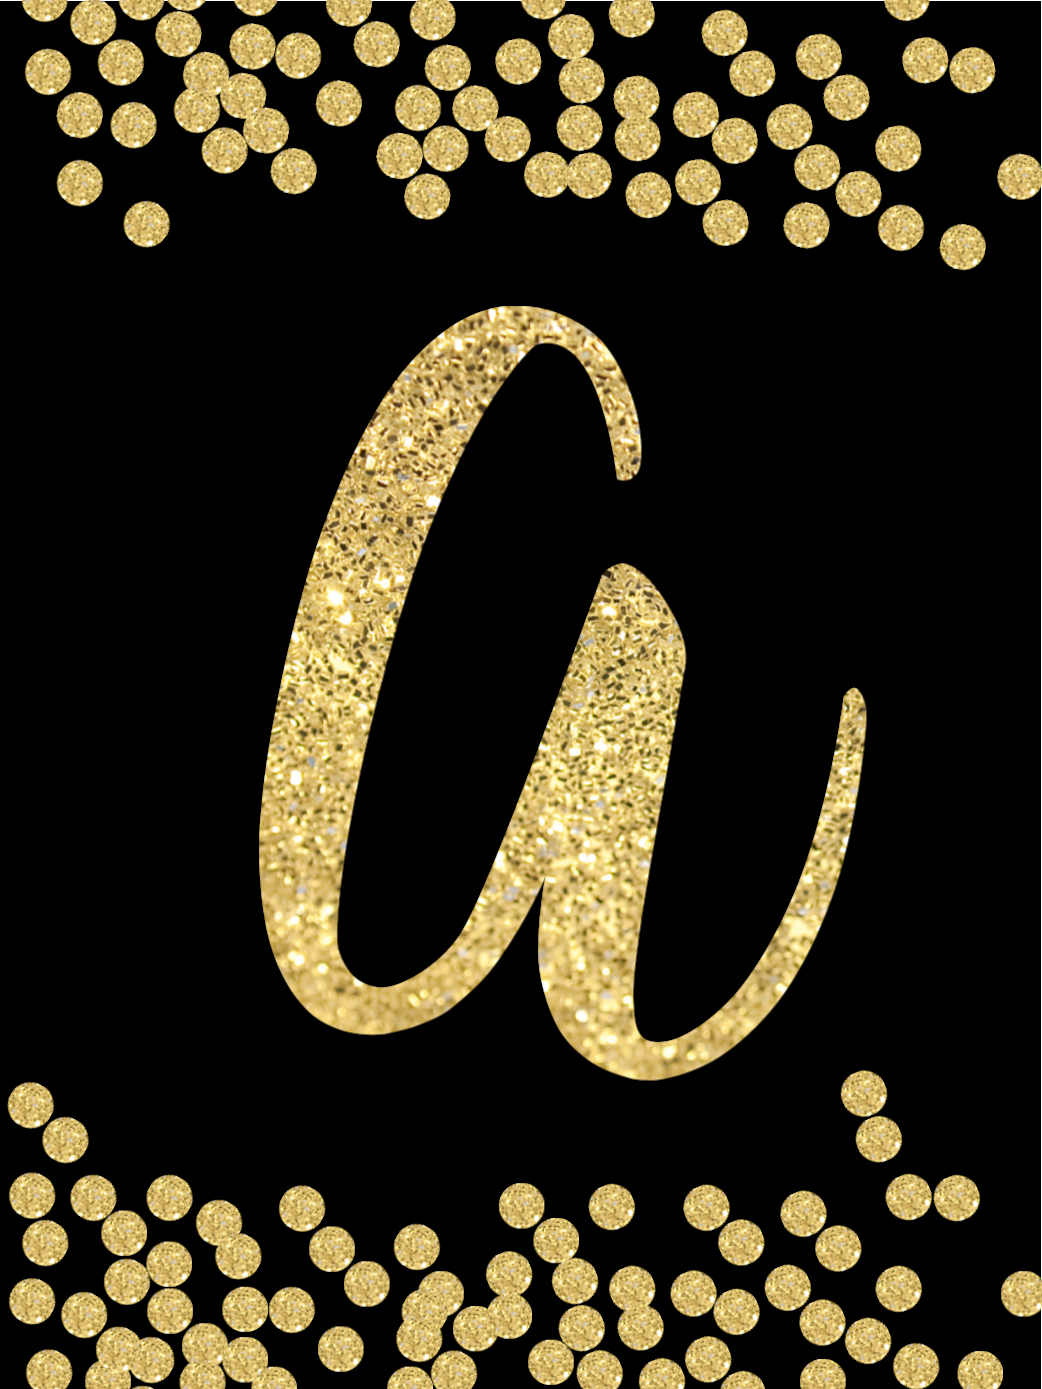 click the following links to print the free printable happy new year banner letters